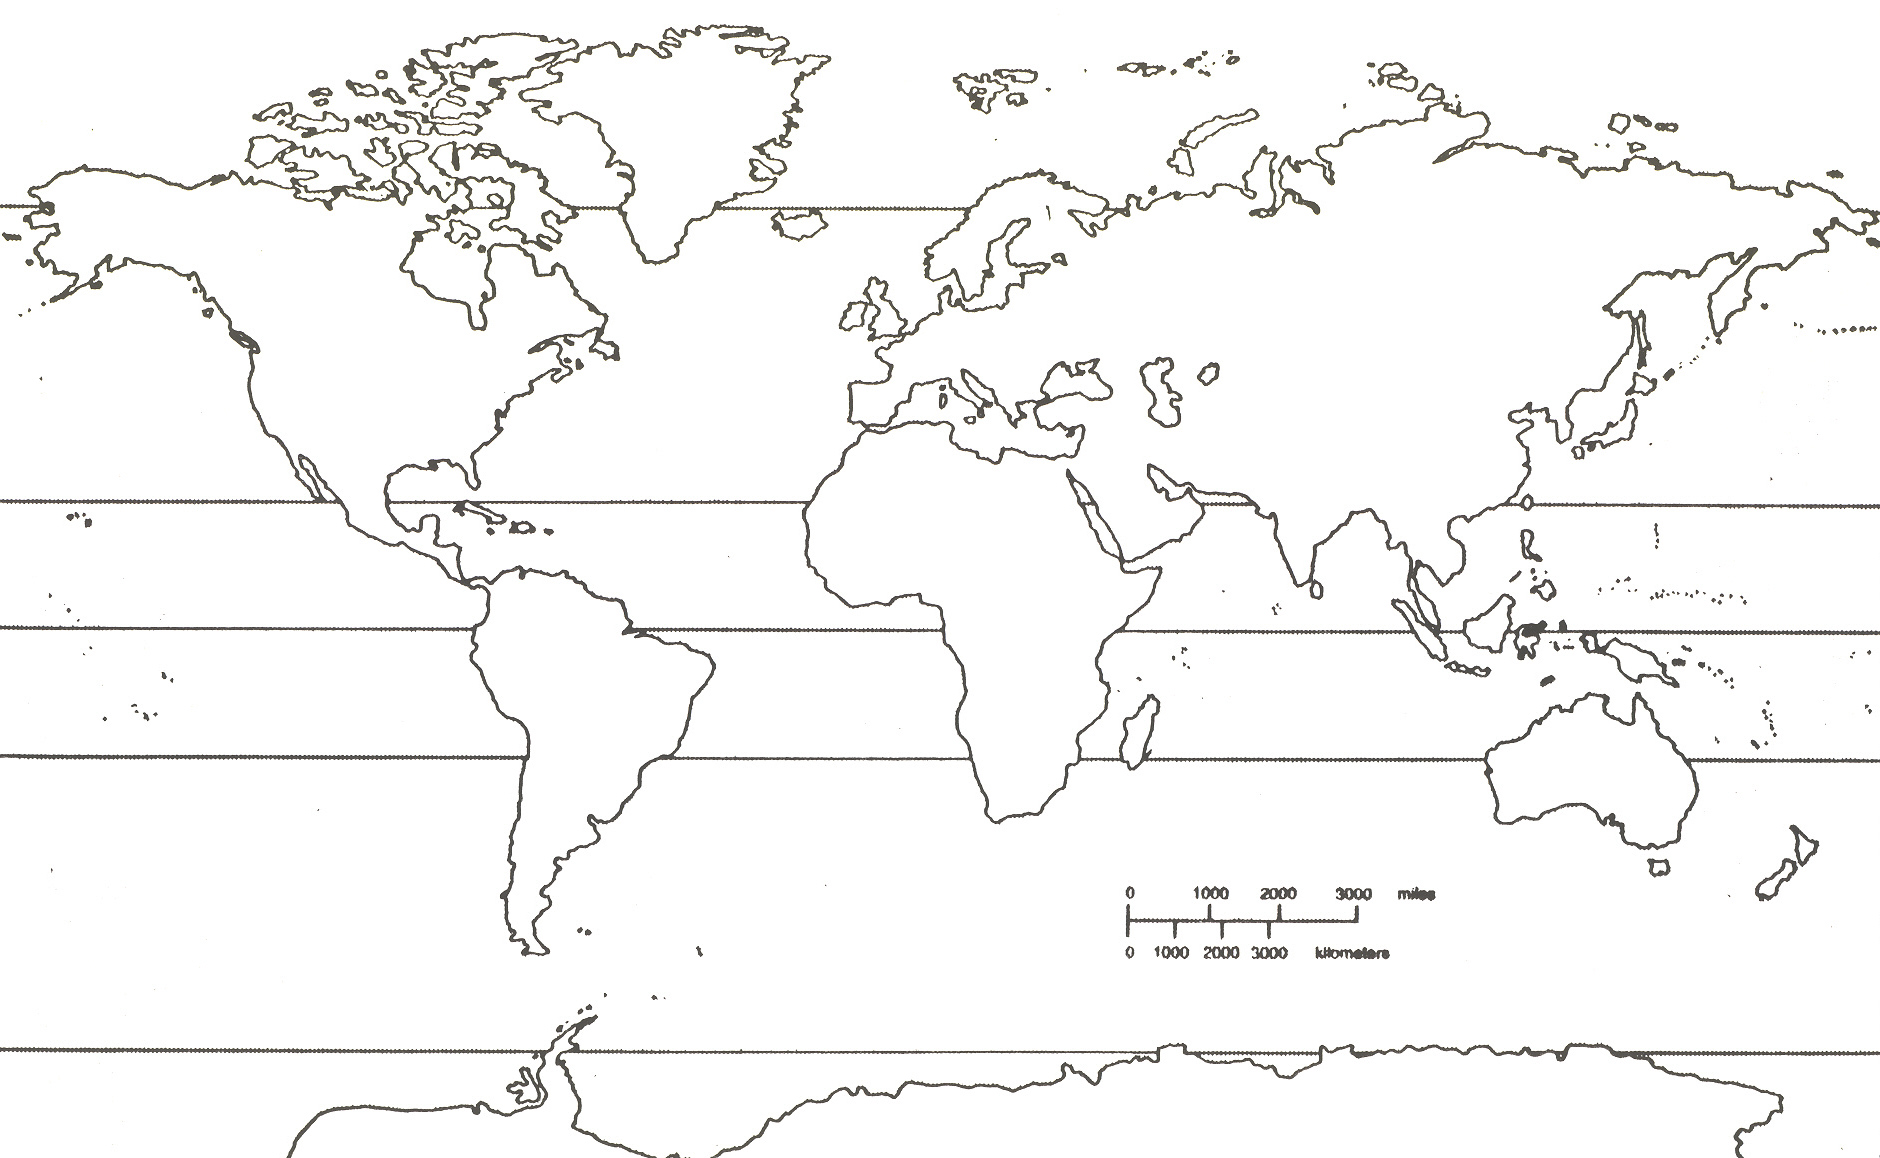 Blank World Map With Equator And Tropics Infobox Military Force | Alternative History | FANDOM powered by Wikia